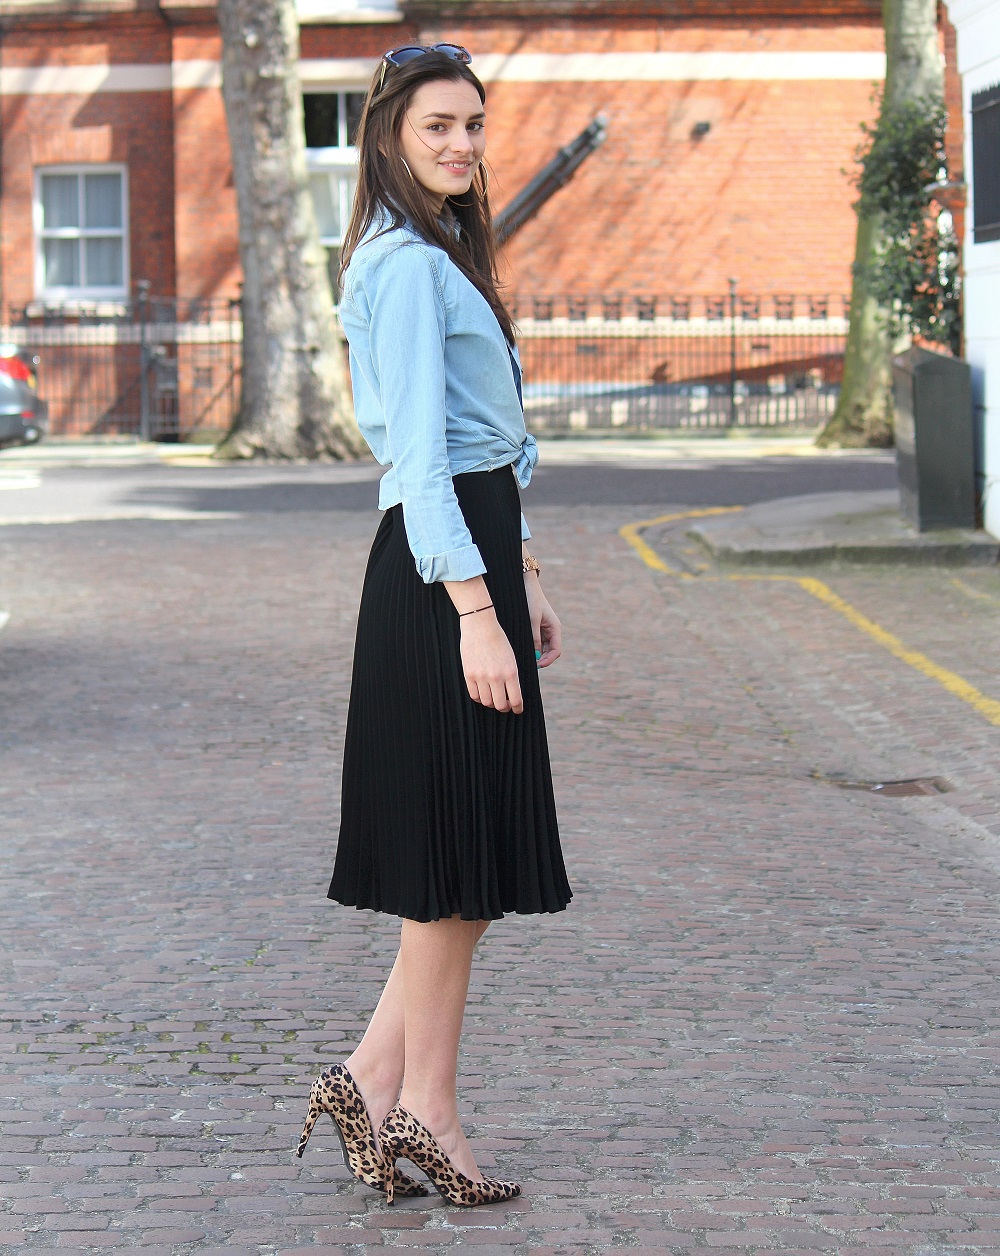 peexo fashion blogger wearing pleated midi skirt with lace bralet and denim shirt and leopard print heels and sunglasses in spring